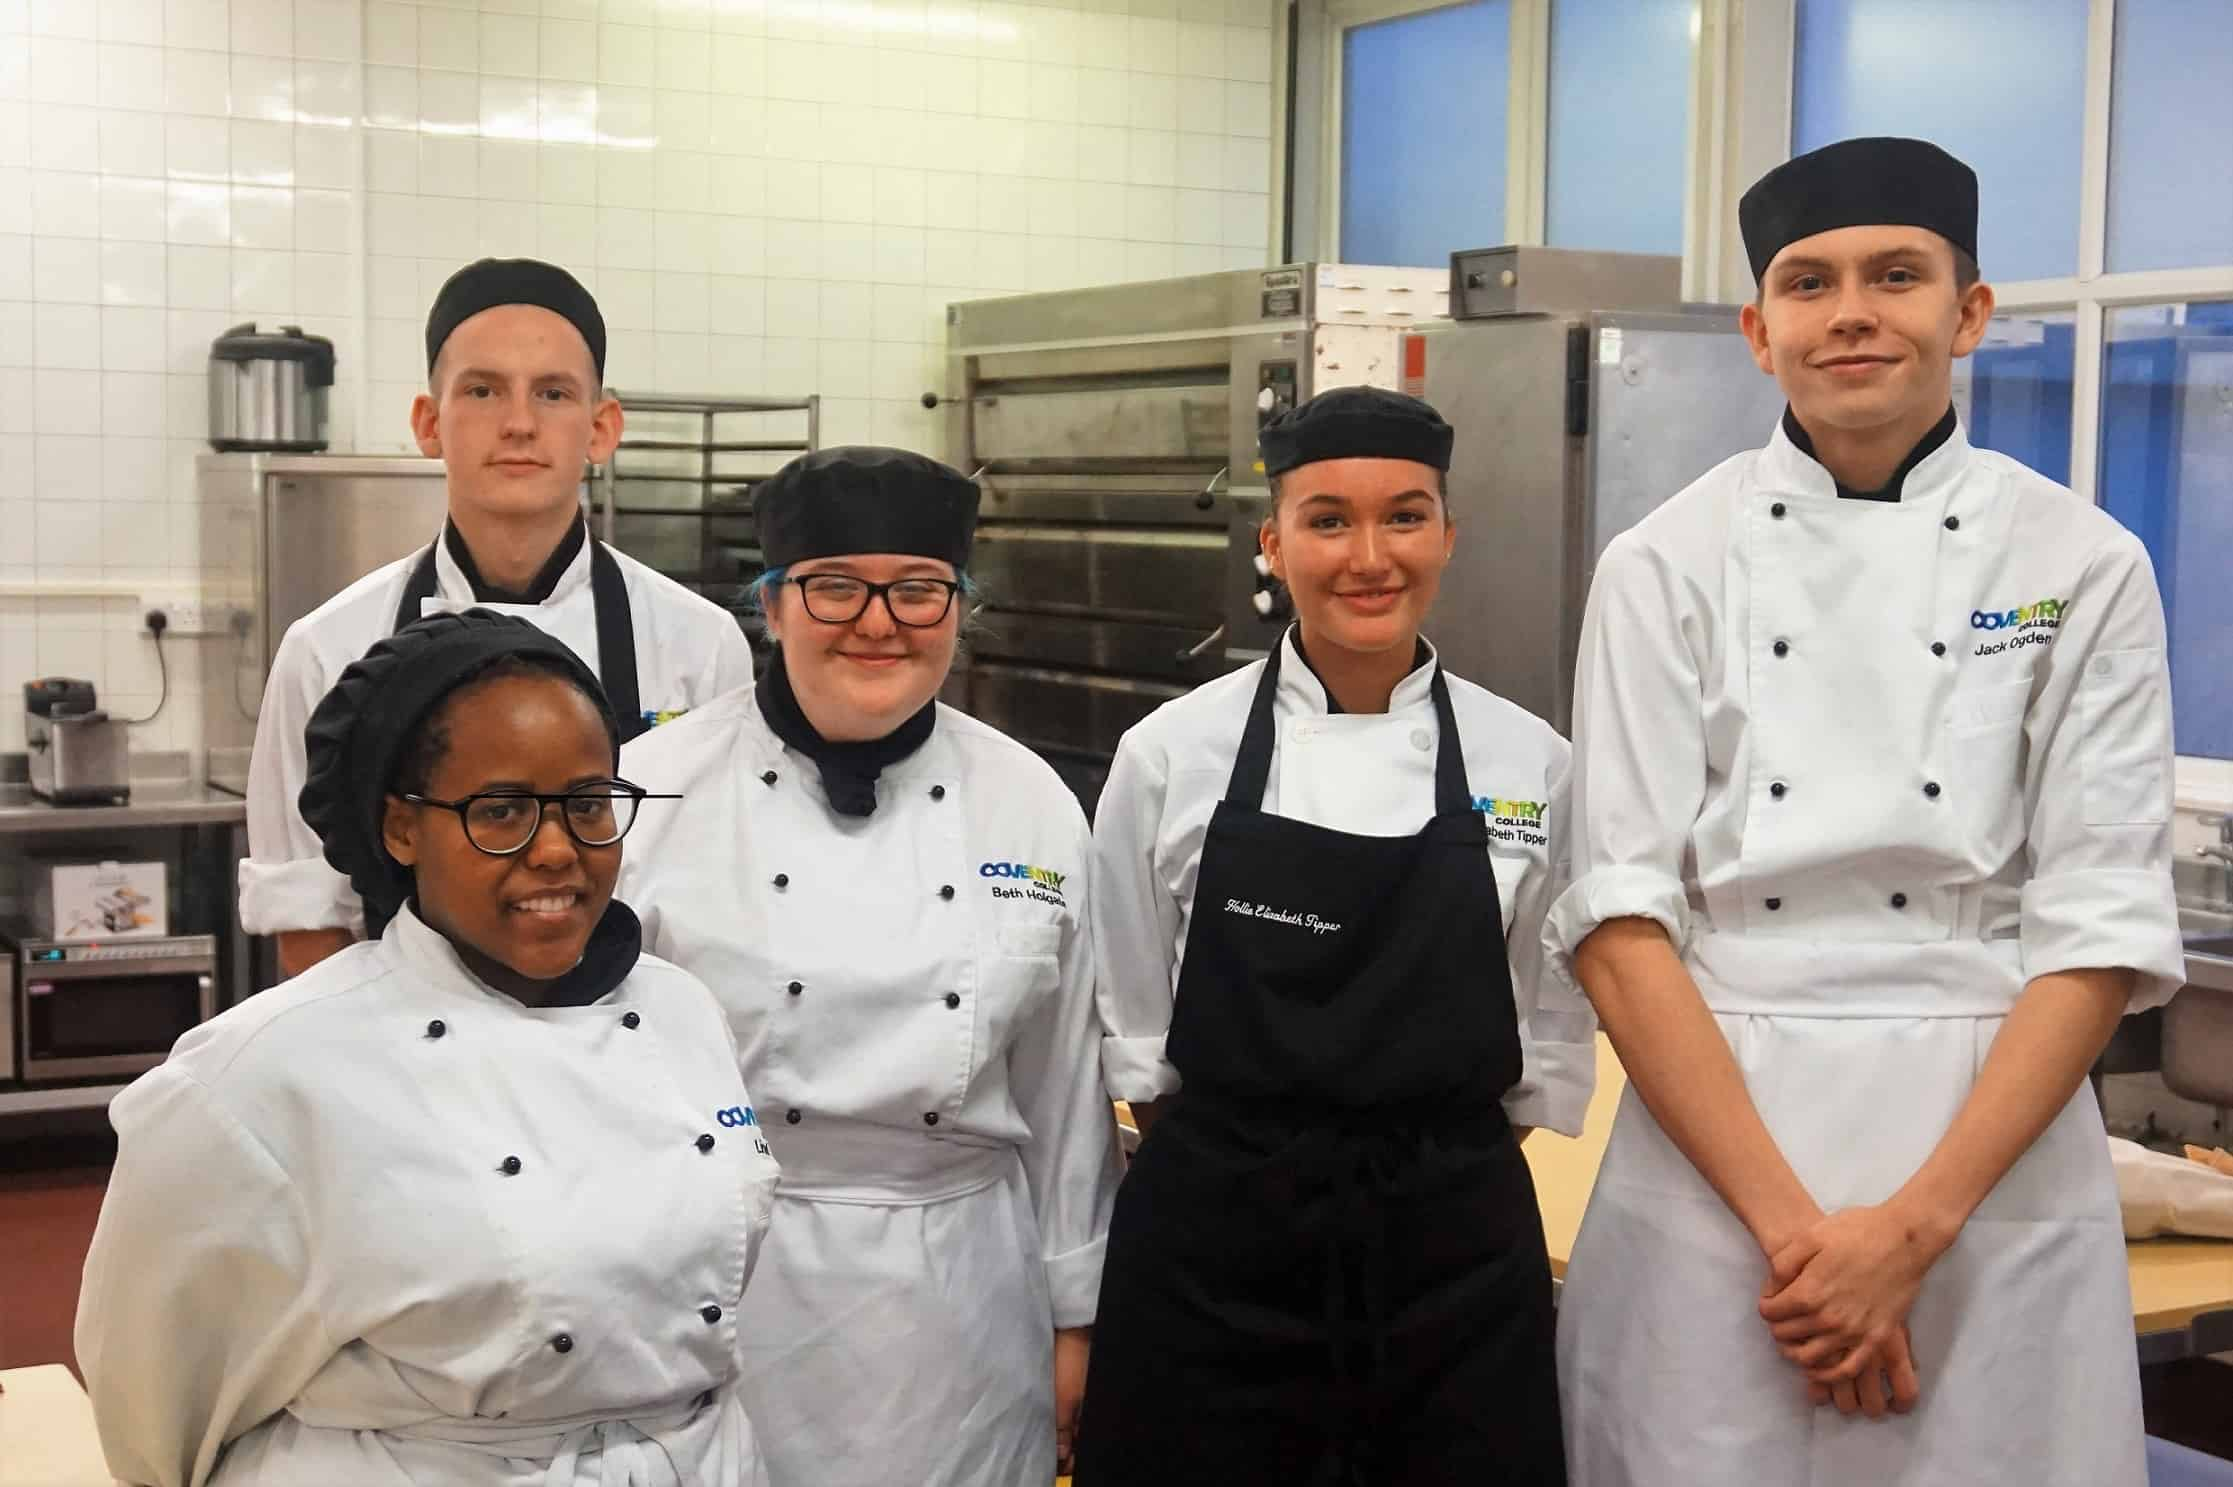 Coventry College catering students in the kitchen